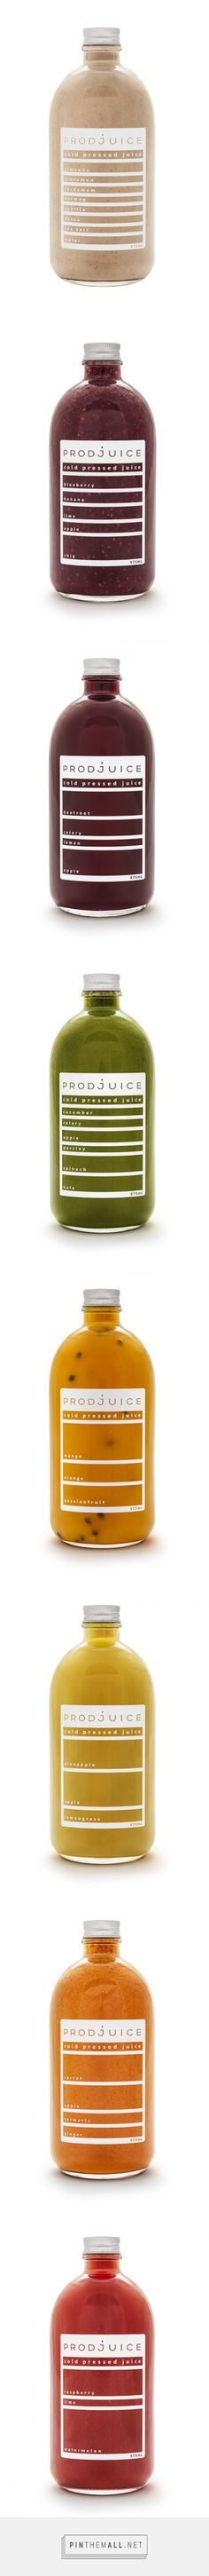 Prodjuice Cold pressed Juice on Packaging of the World - Creative Package Design Gallery... - a grouped images picture - Pin Them All